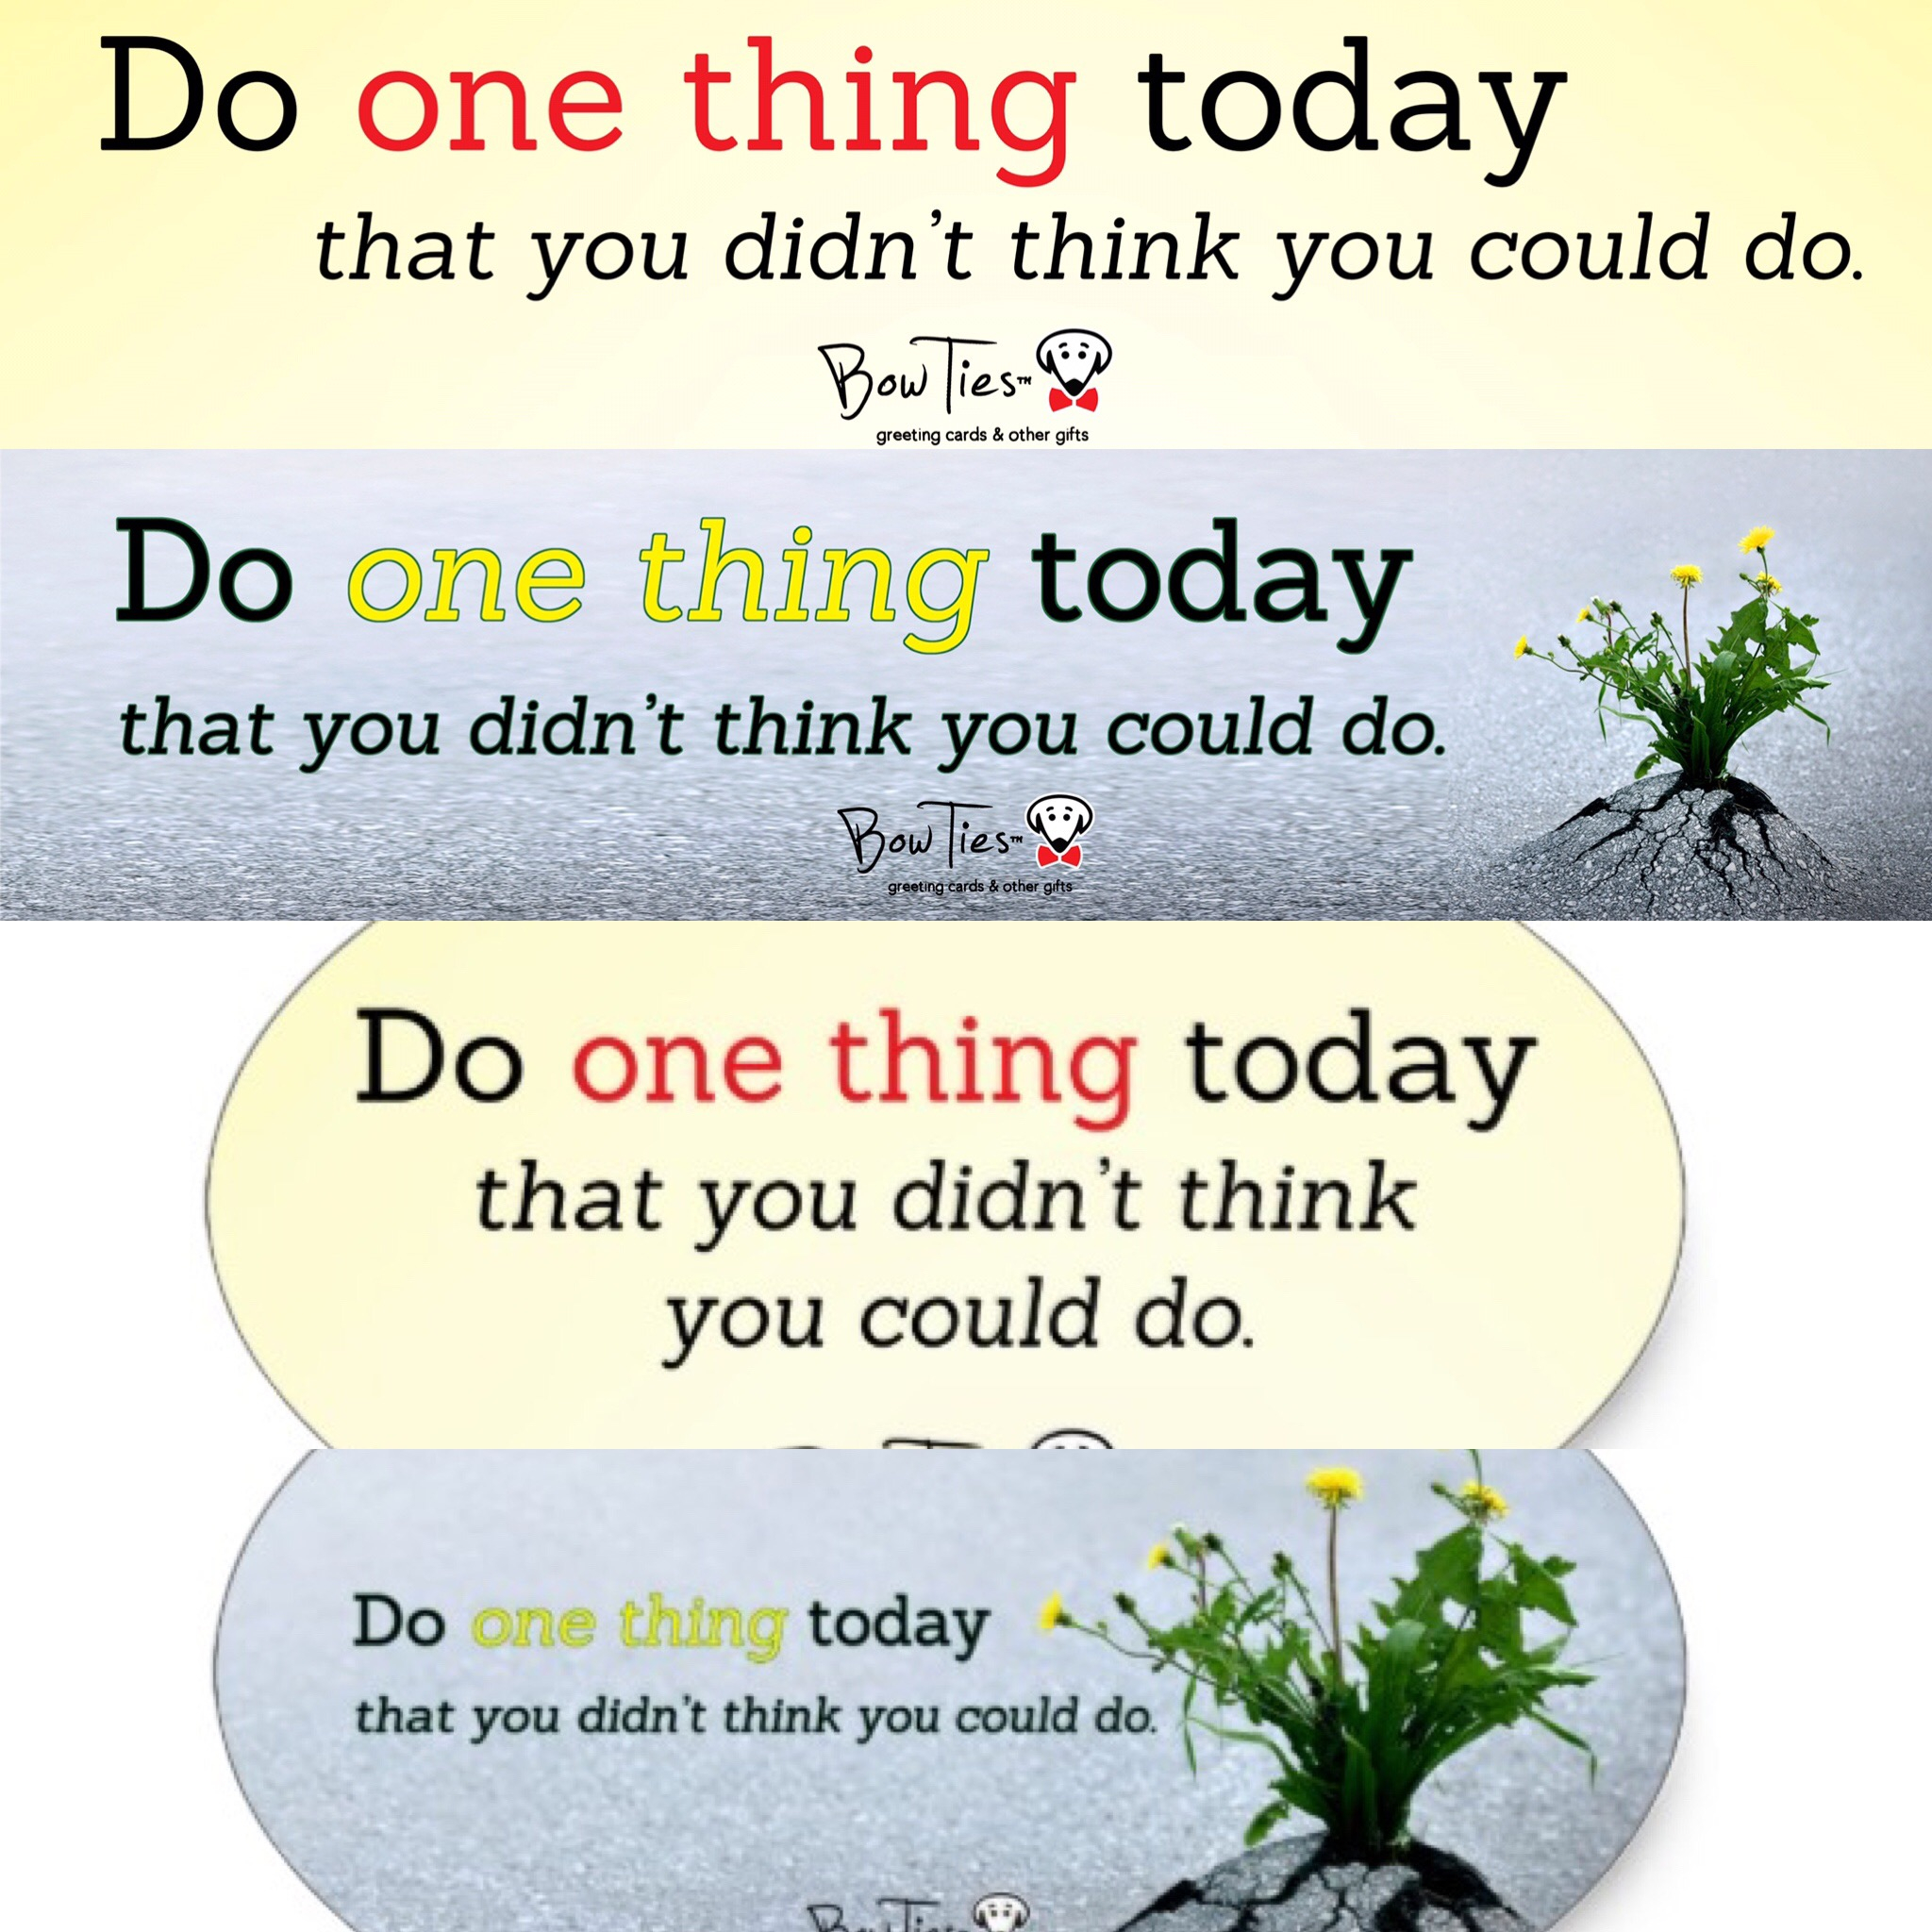 Do one thing today that you didn't think you could do. – sticker